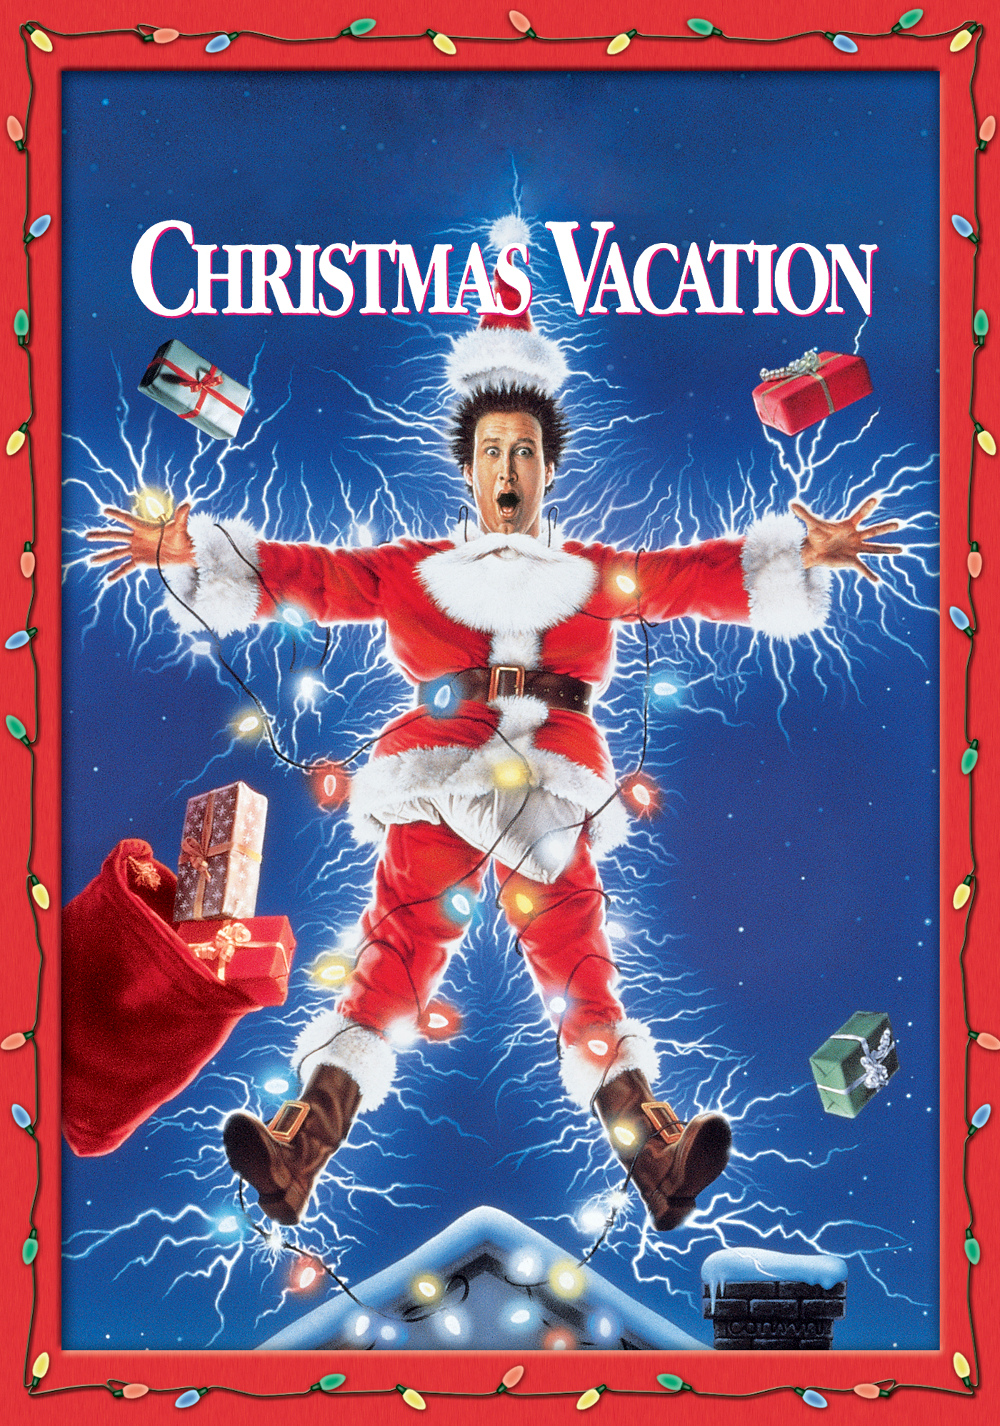 Christmas Movies Images National Lampoons Christmas Vacation 1989 Poster Hd Wallpaper And Background Photos